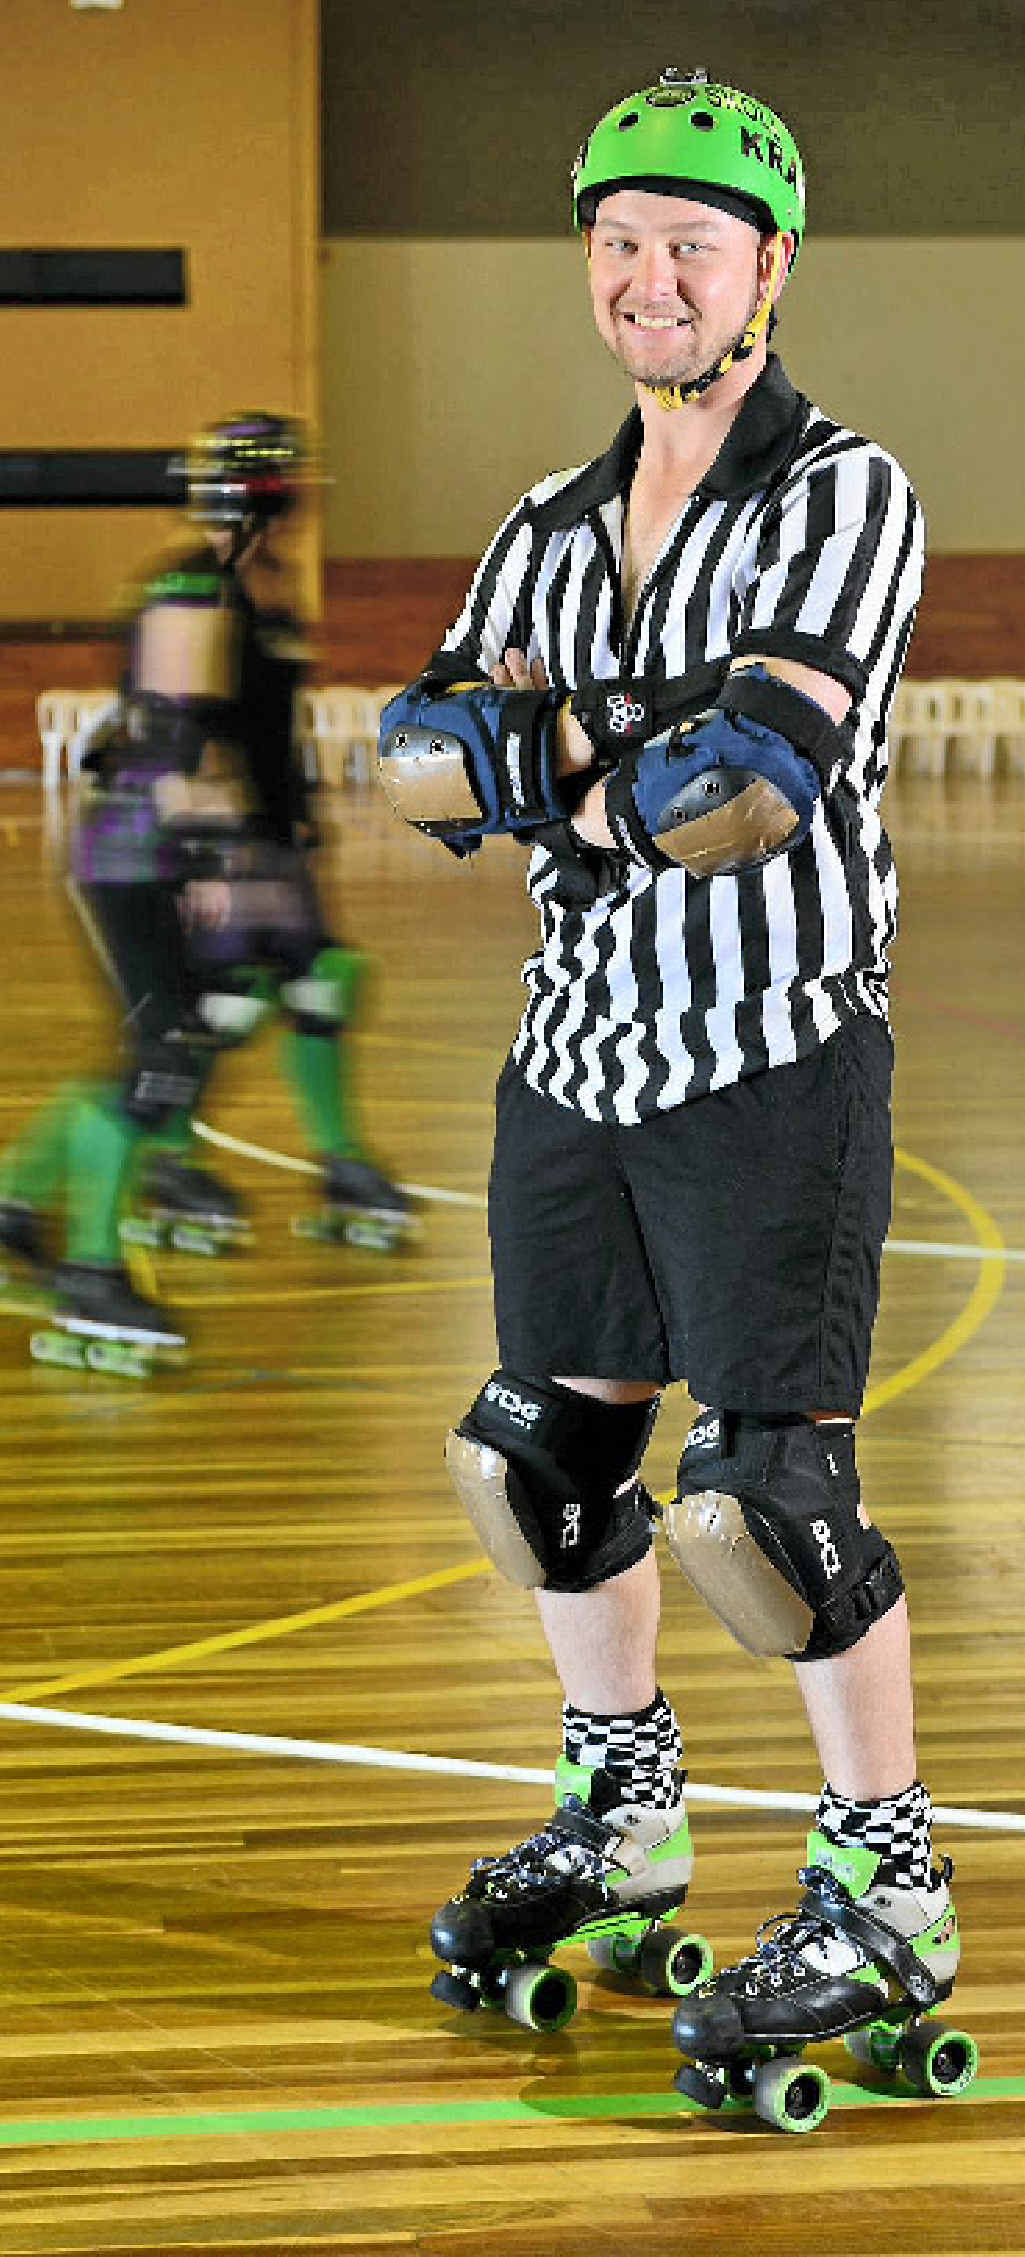 SPEED PLAY: Kris Moseling, known as Skoll Kratta, has earned his stripes as a roller derby referee.